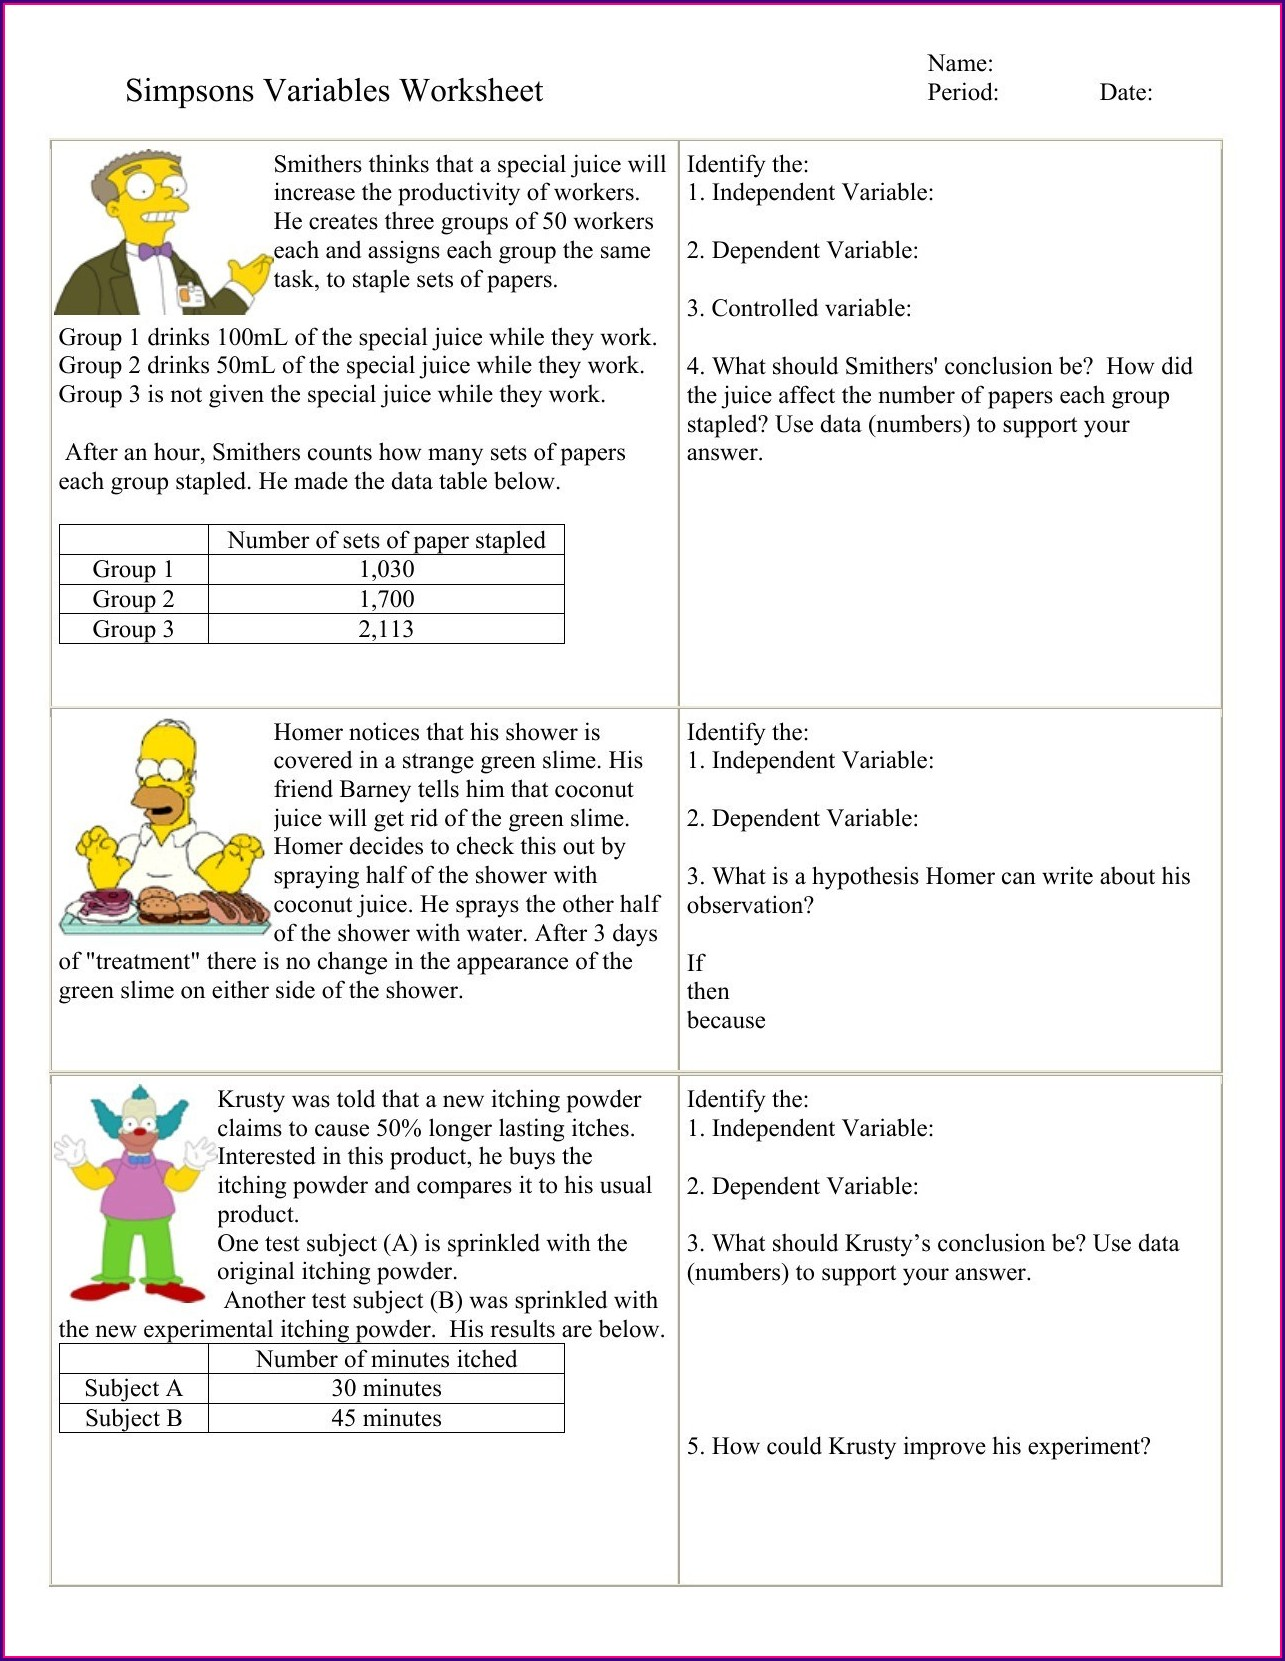 Simpsons Scientific Method Worksheet Key